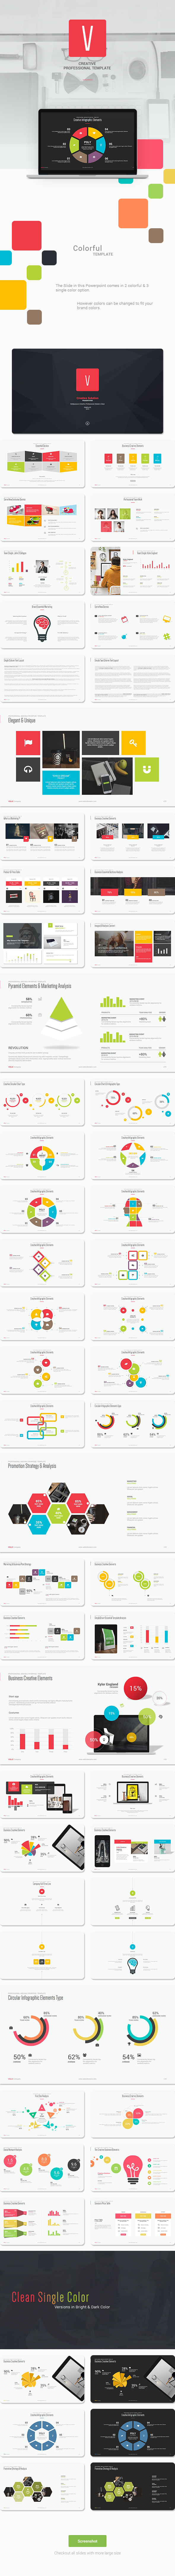 Get A Modern Powerpoint Presentation That Is Beautifully Designed